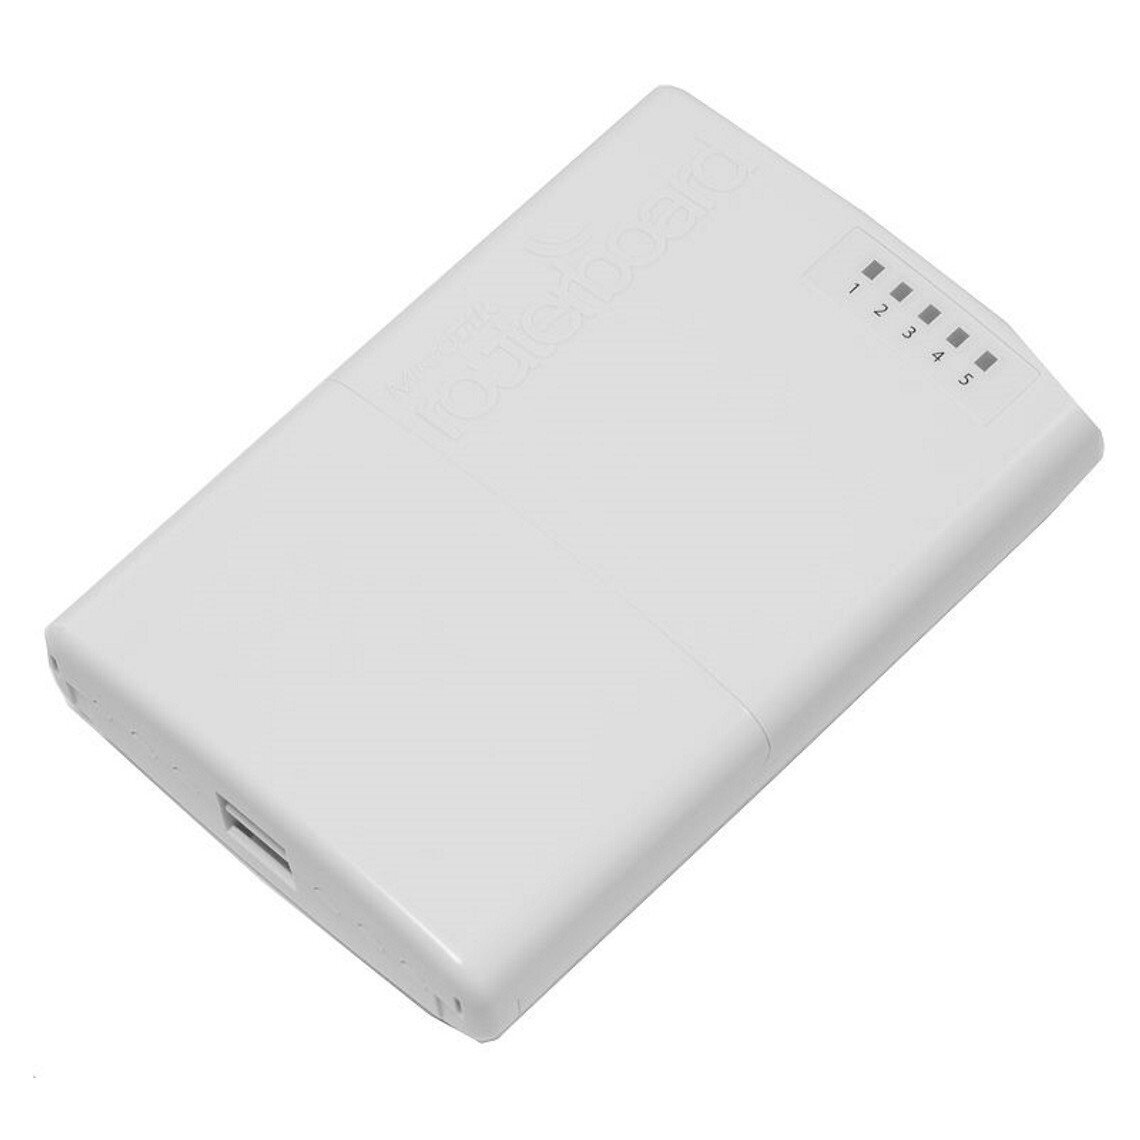 Маршрутизатор MikroTik PowerBOX 5xFE/PoE, RouterOS L4, outdoor case (RB750P-PBR2) фото